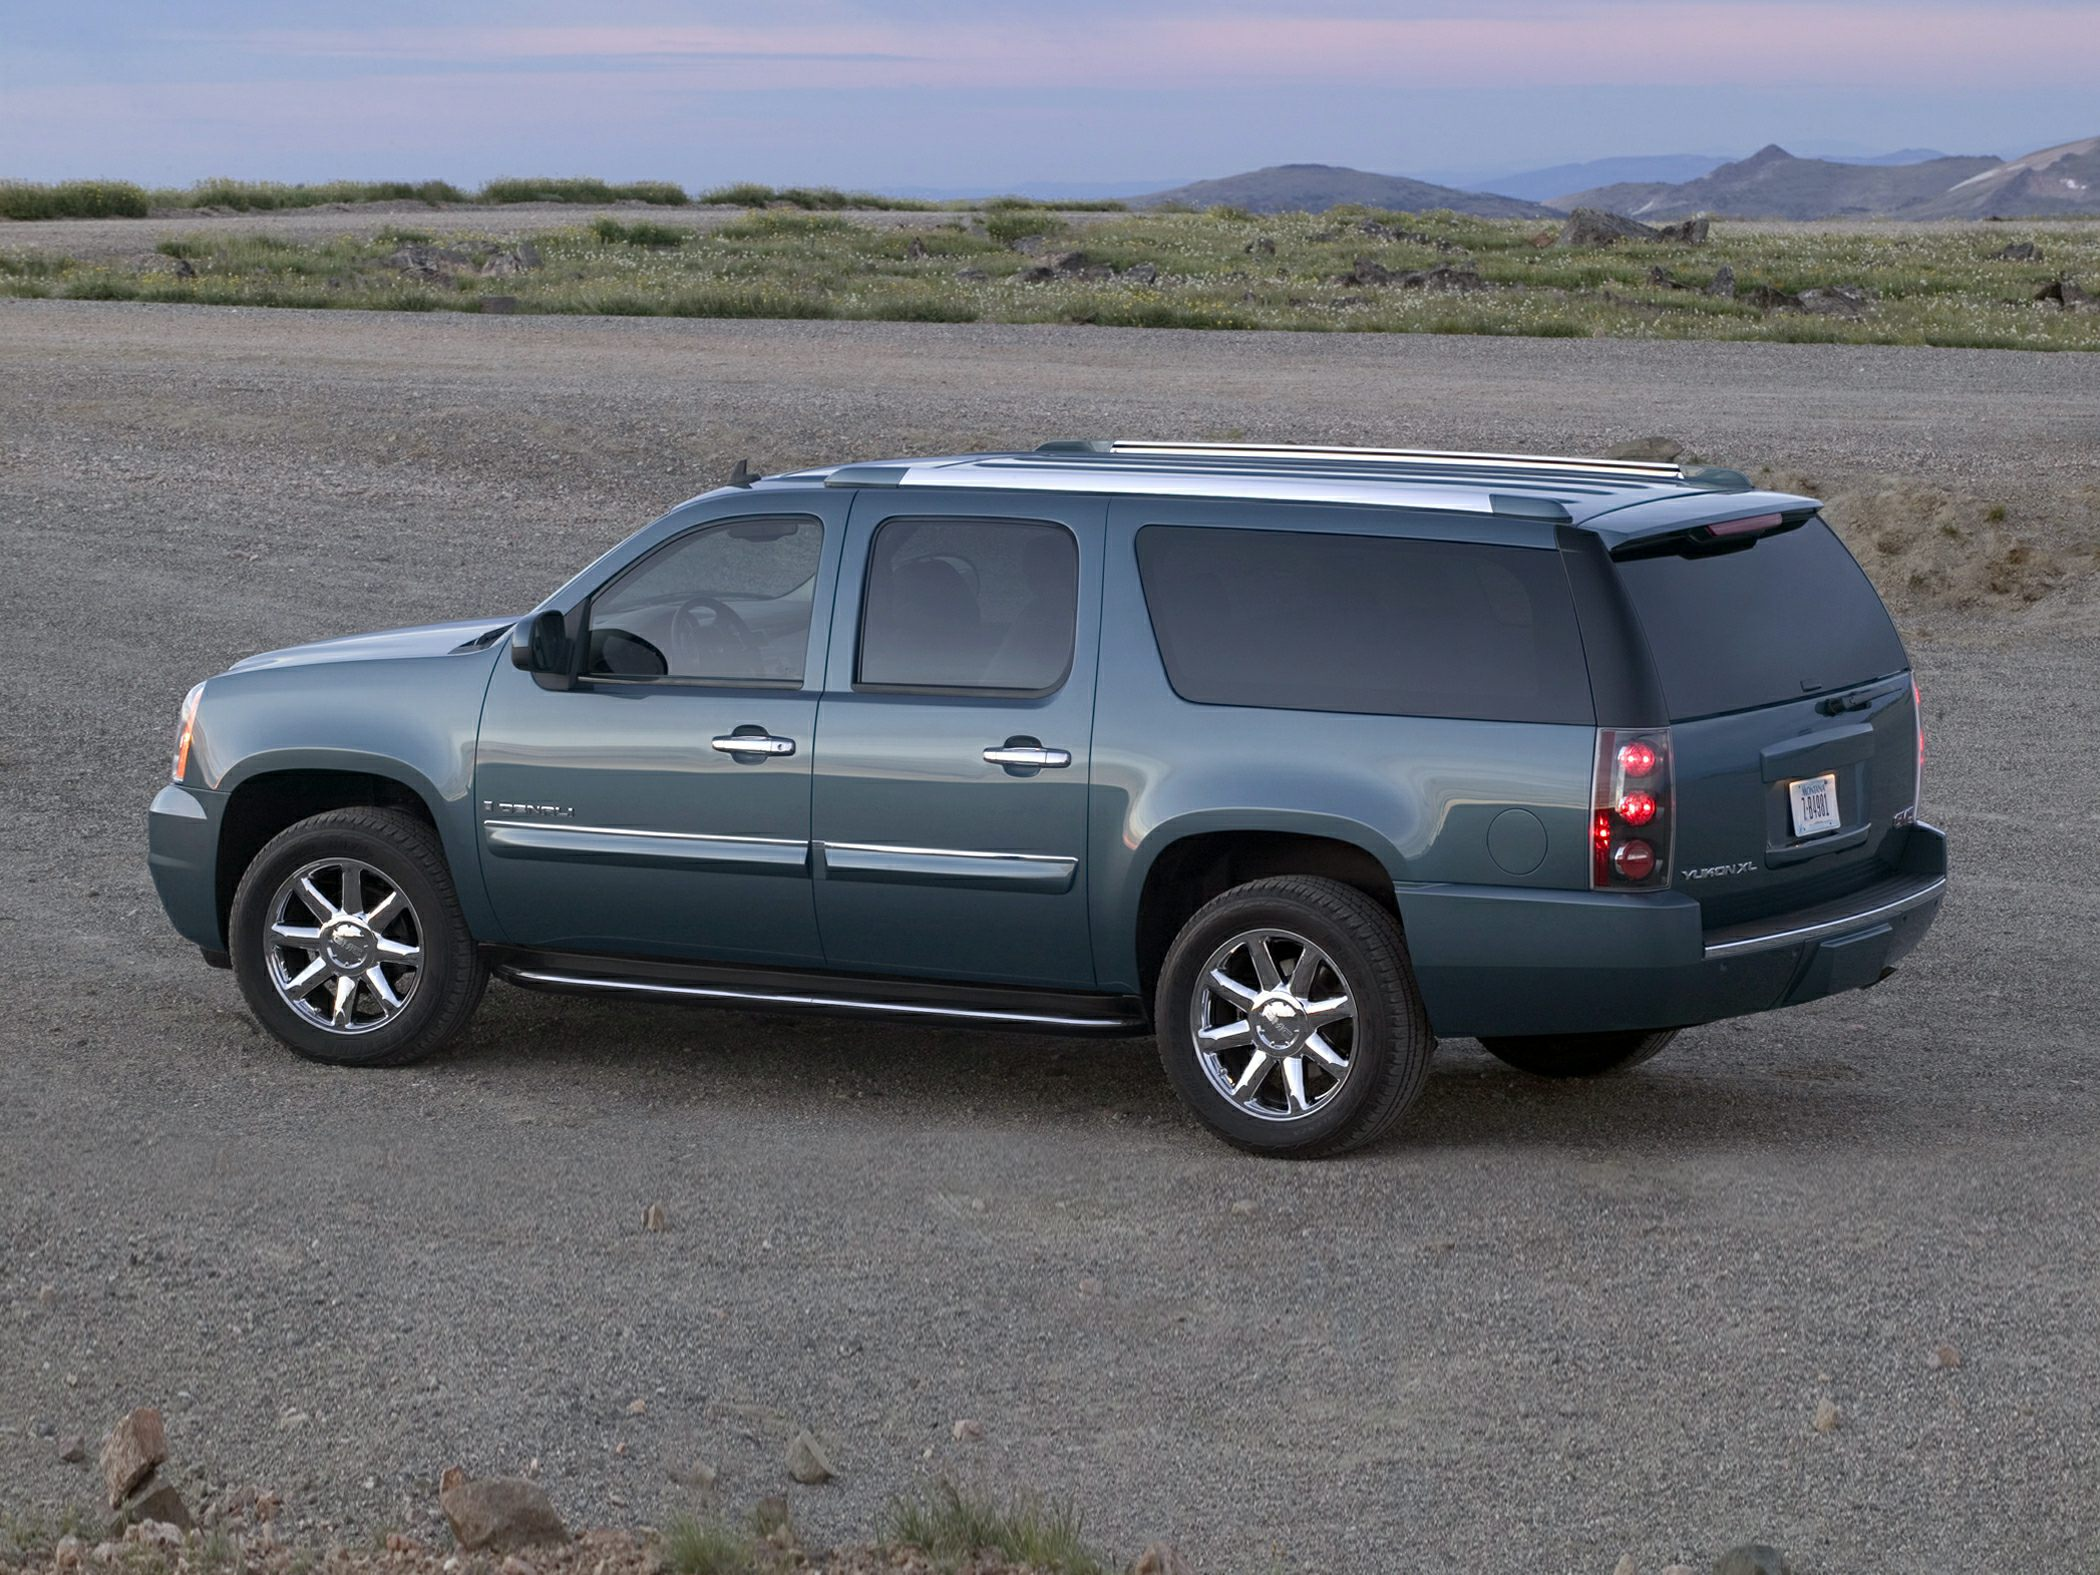 2012 Gmc Yukon Xl 1500 Denali All Wheel Drive Specs And Prices